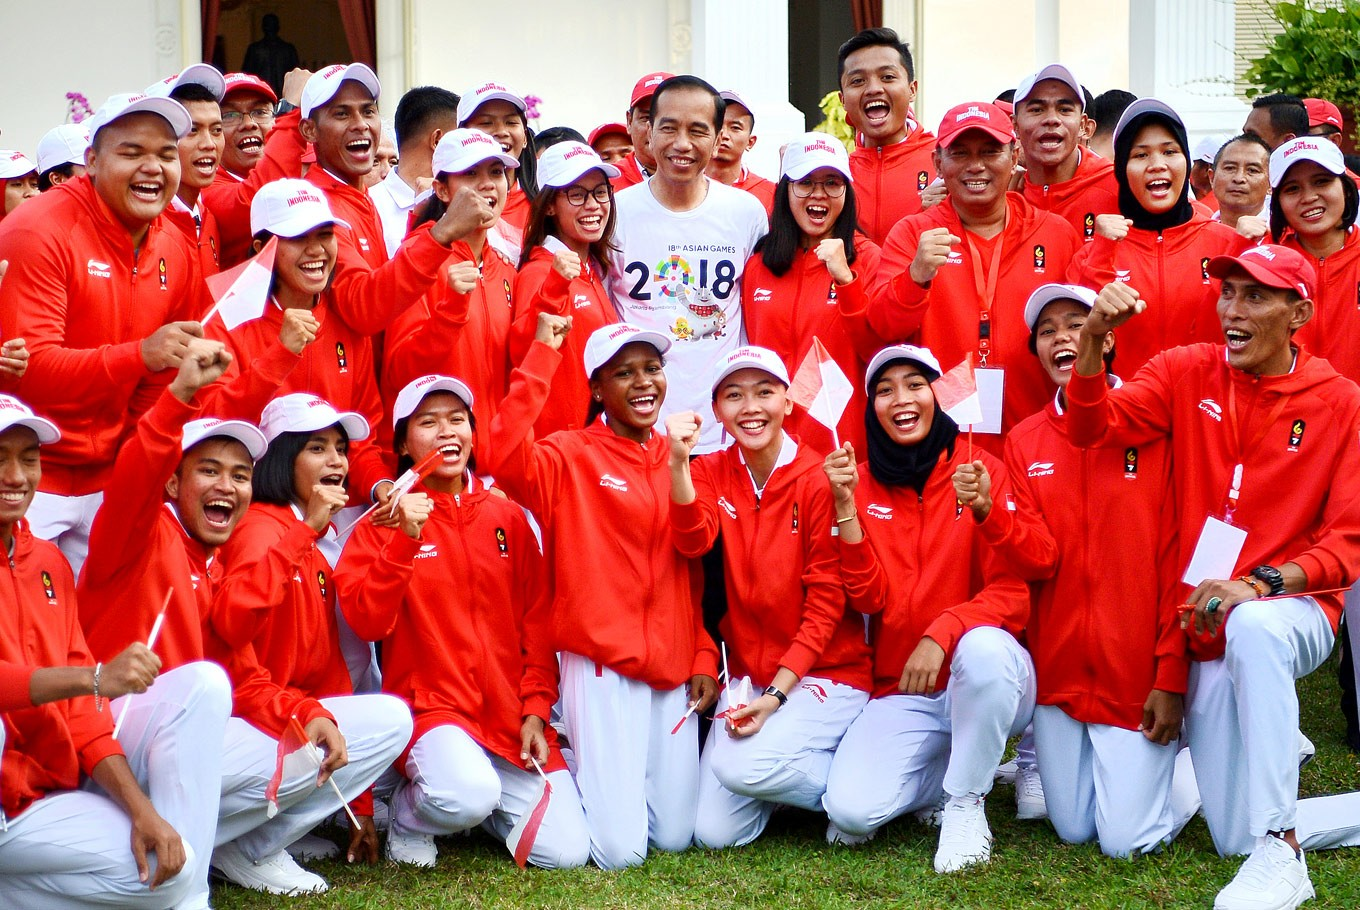 Indonesia pins hopes for gold on these shining athletes: The list